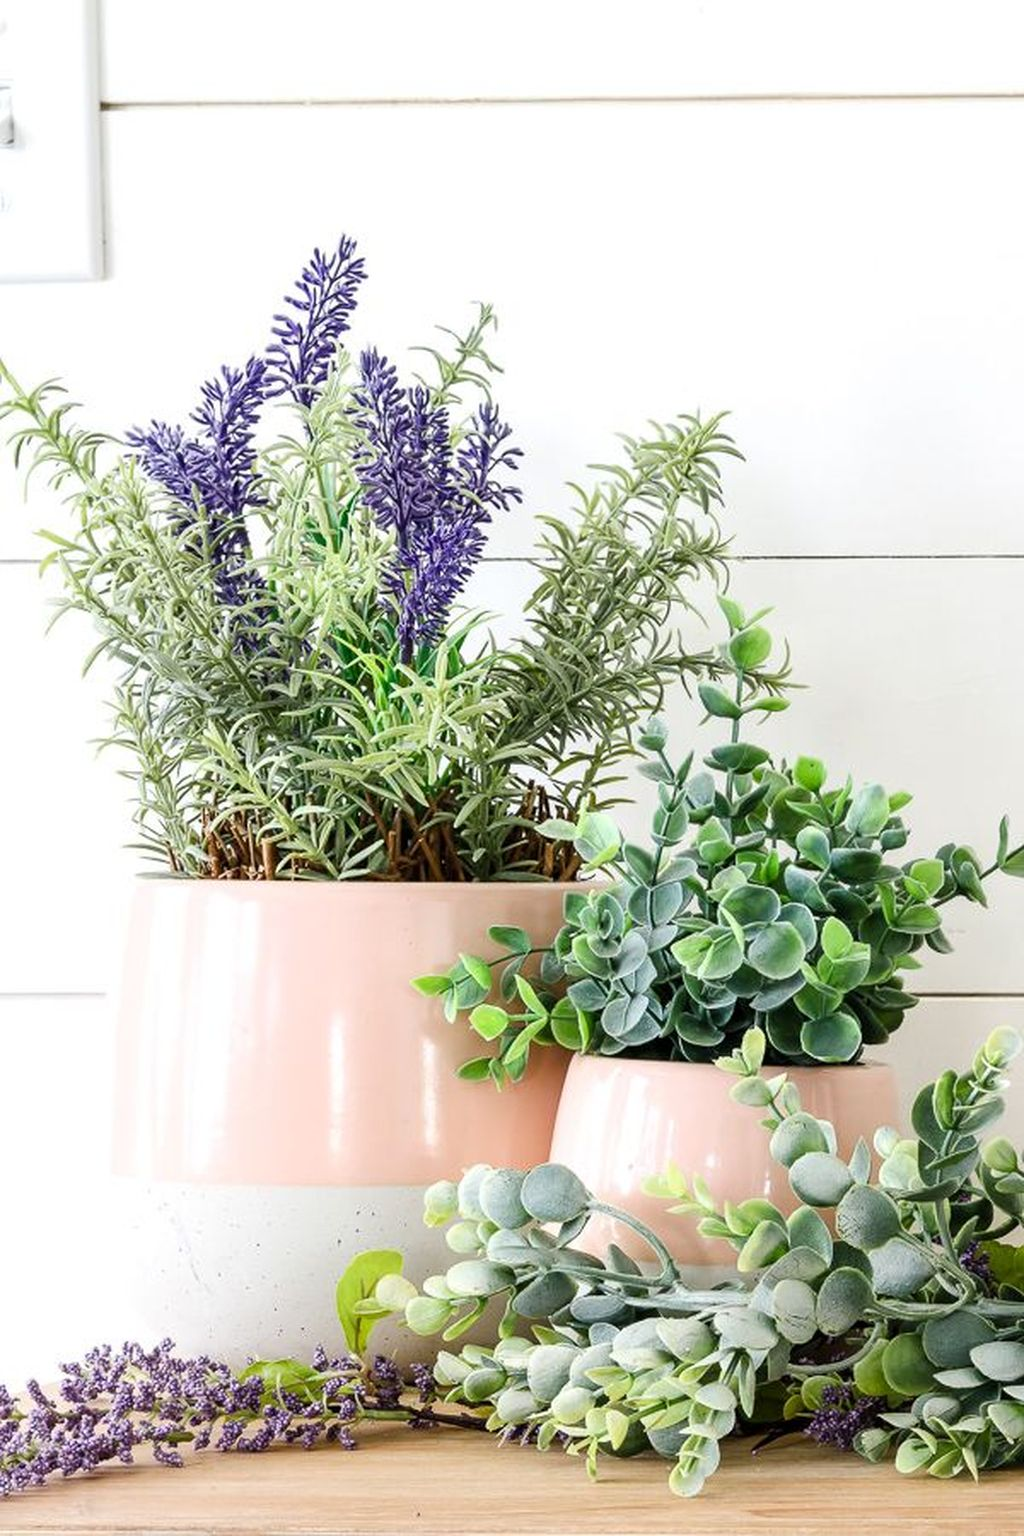 Awesome Spring Interior Decor Ideas That You Should Copy 22